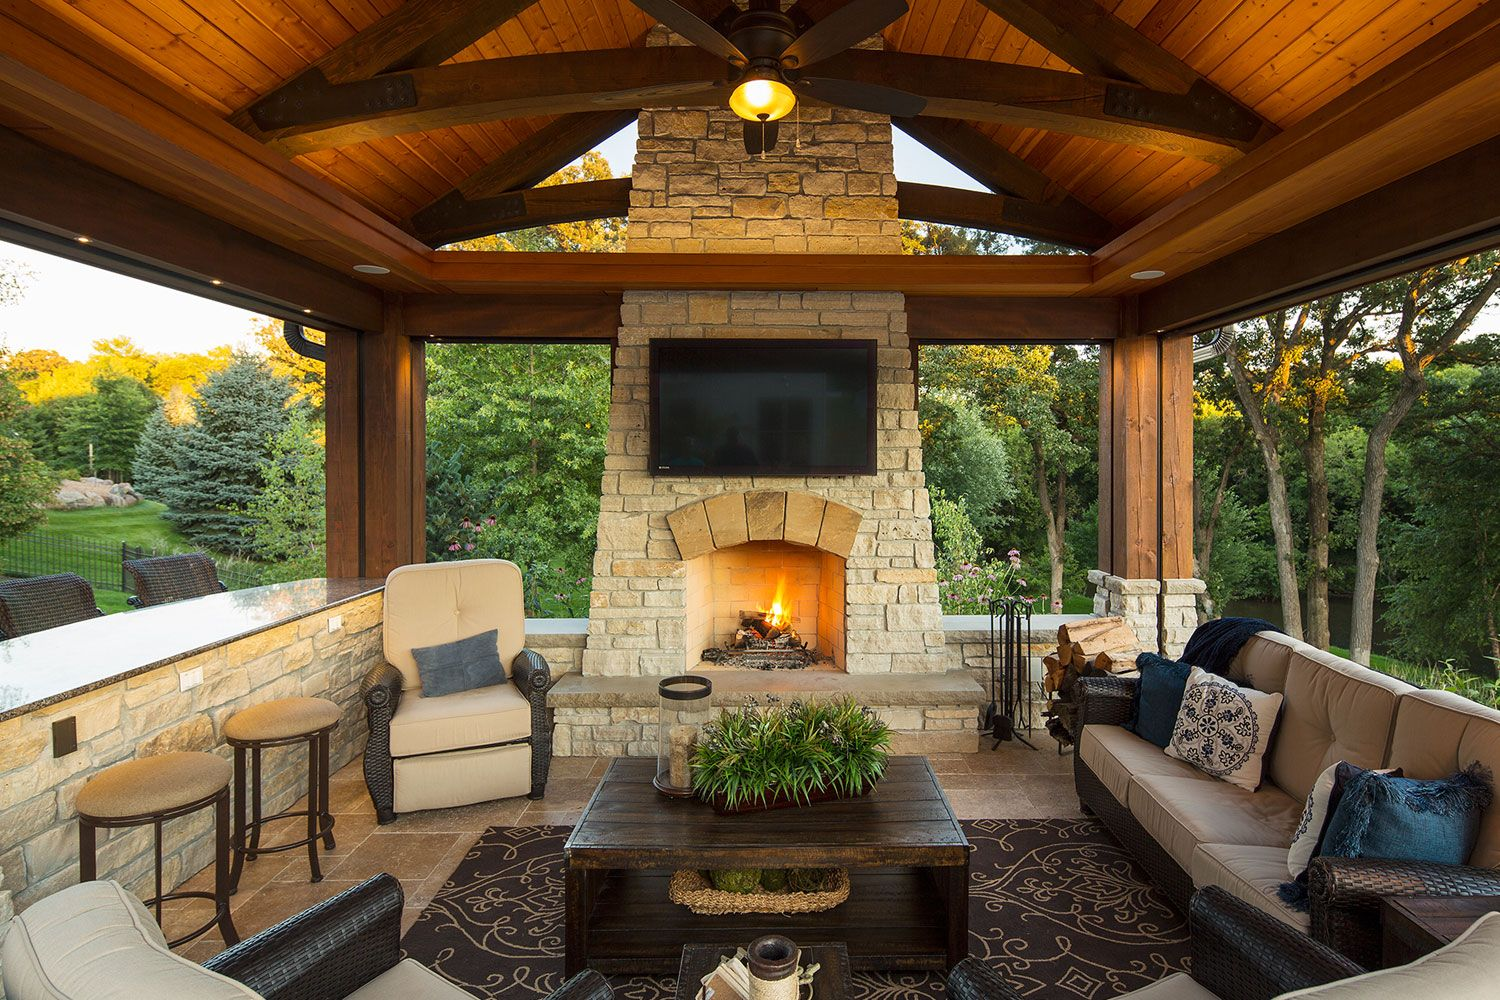 Outdoor Living Room with Stone Fireplace and Travertine